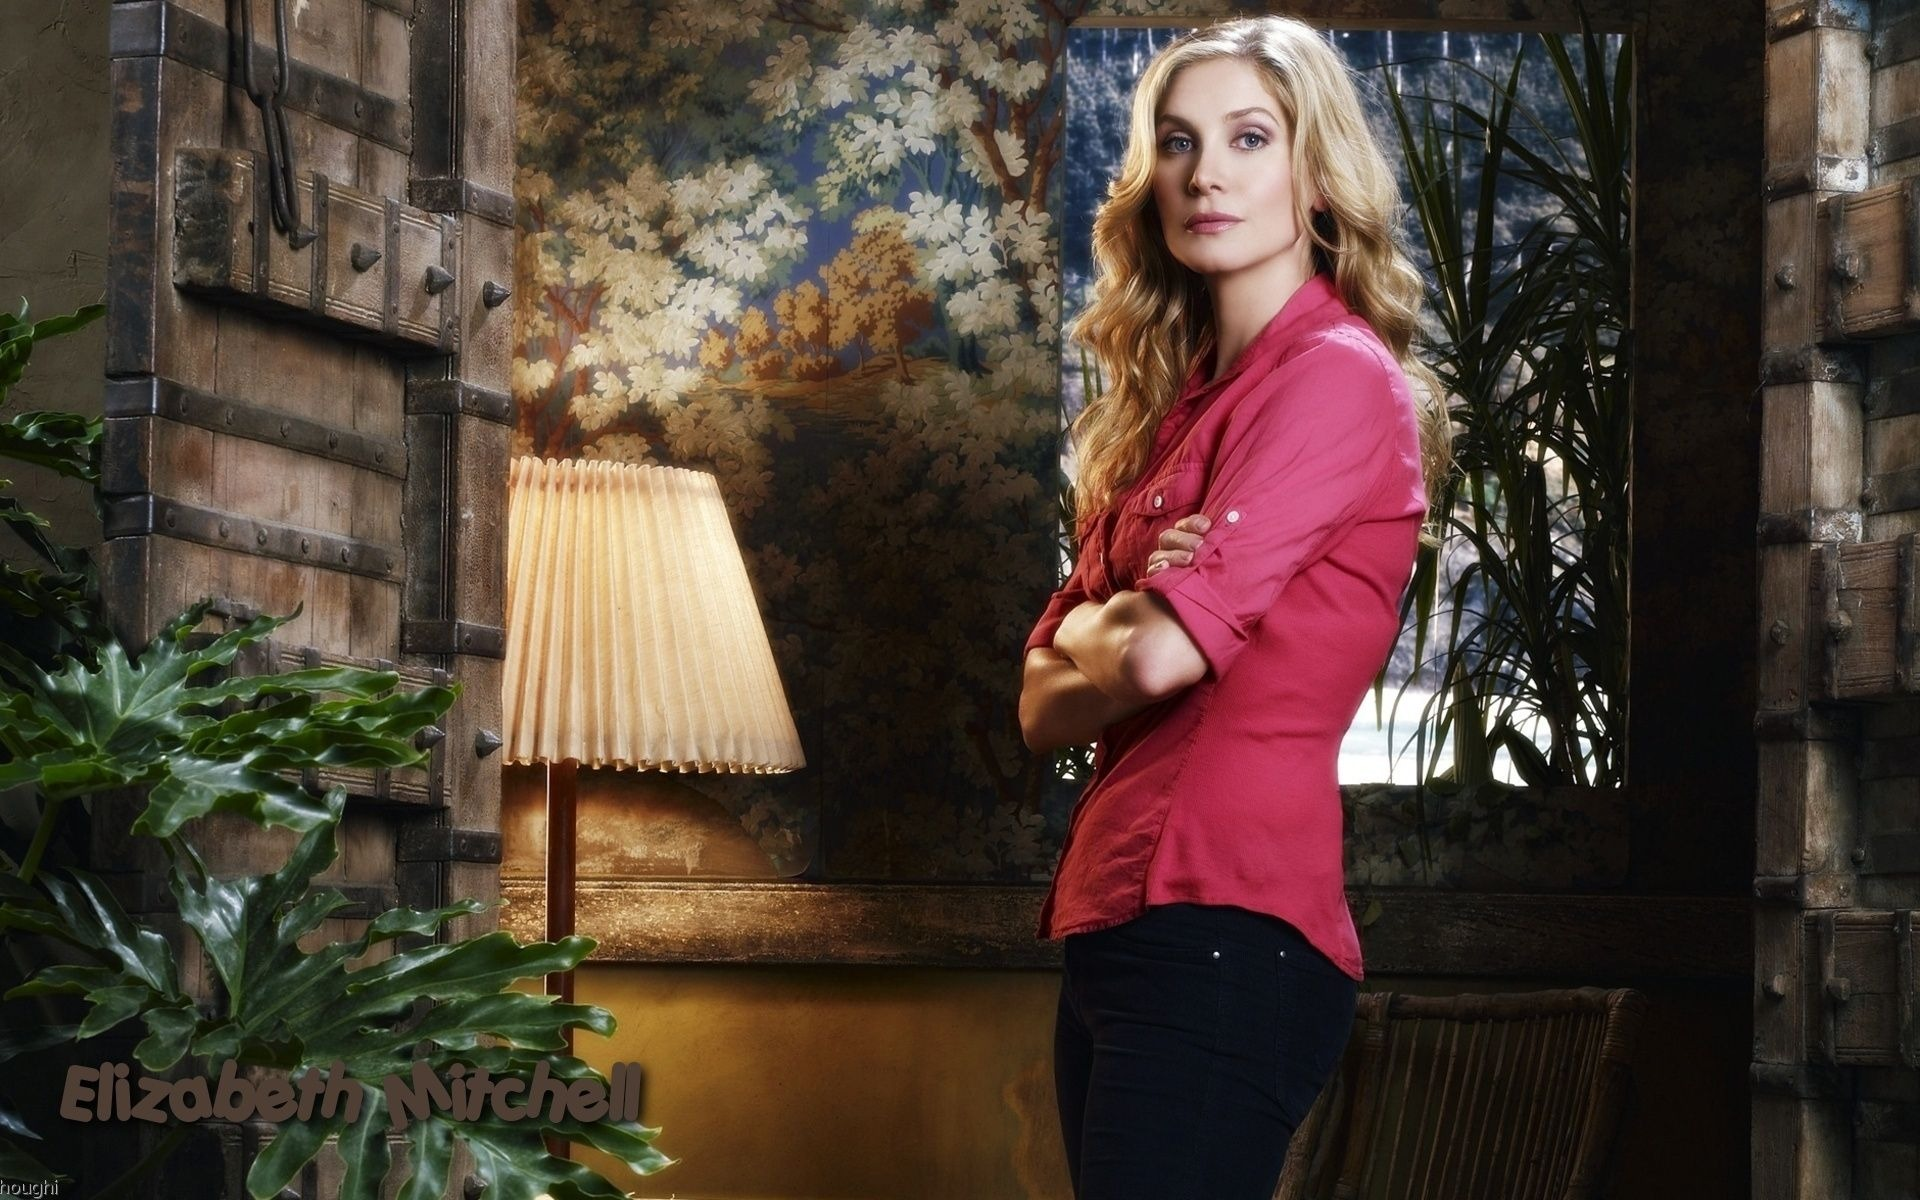 Elizabeth Mitchell #009 - 1920x1200 Wallpapers Pictures Photos Images